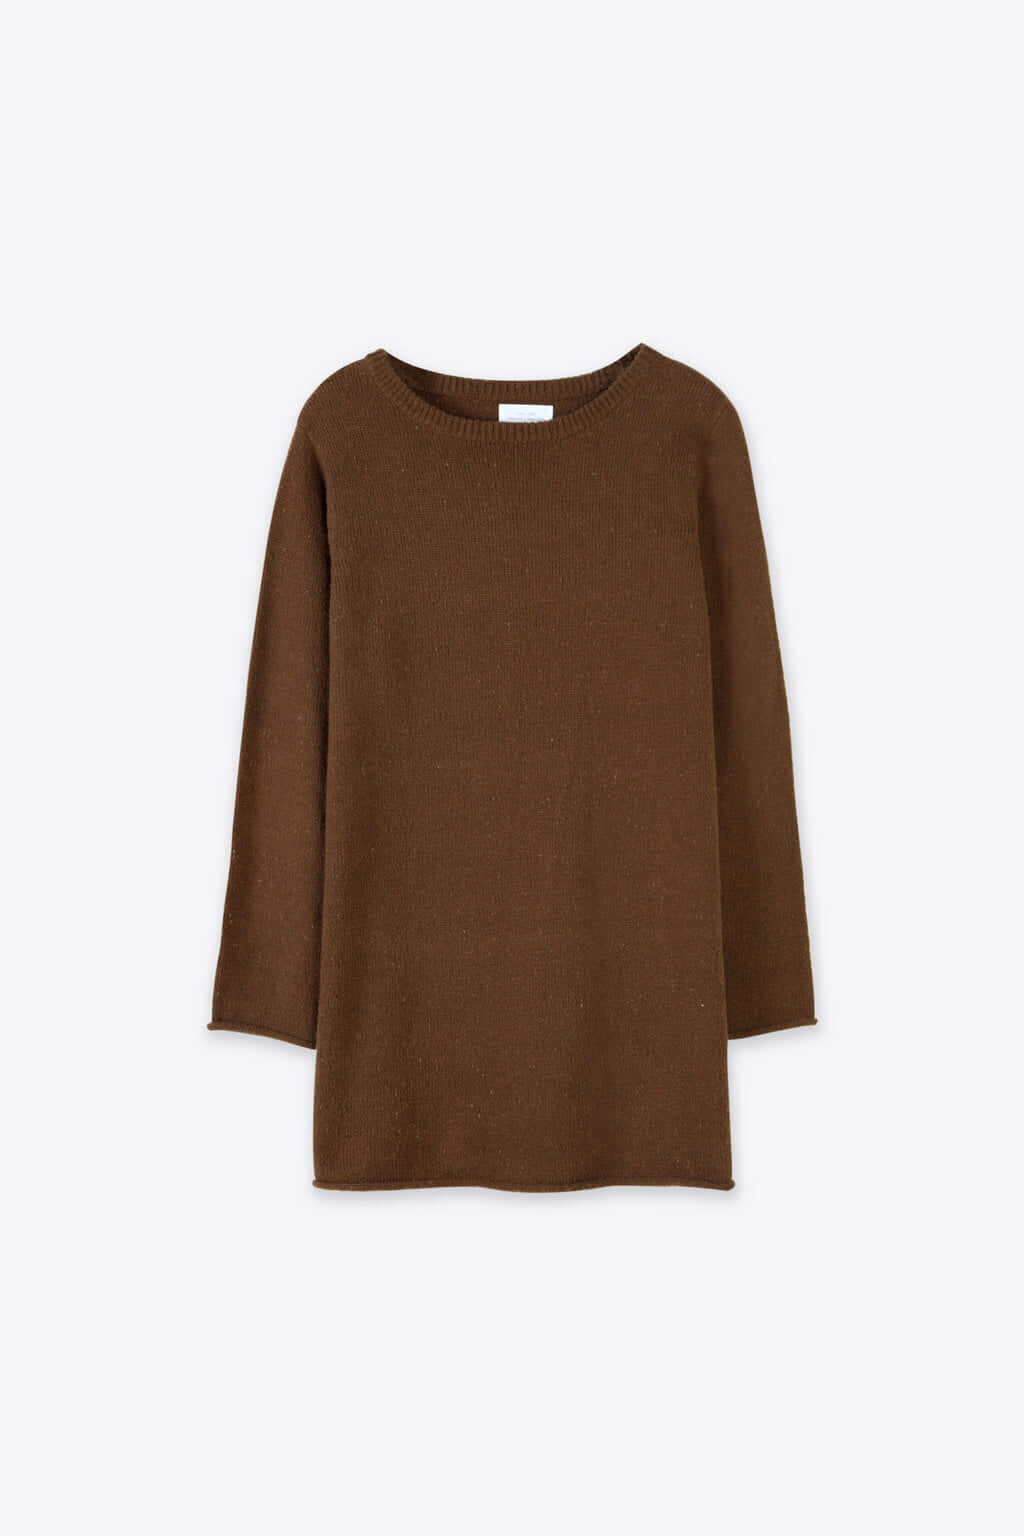 Sweater 2864 Camel 5